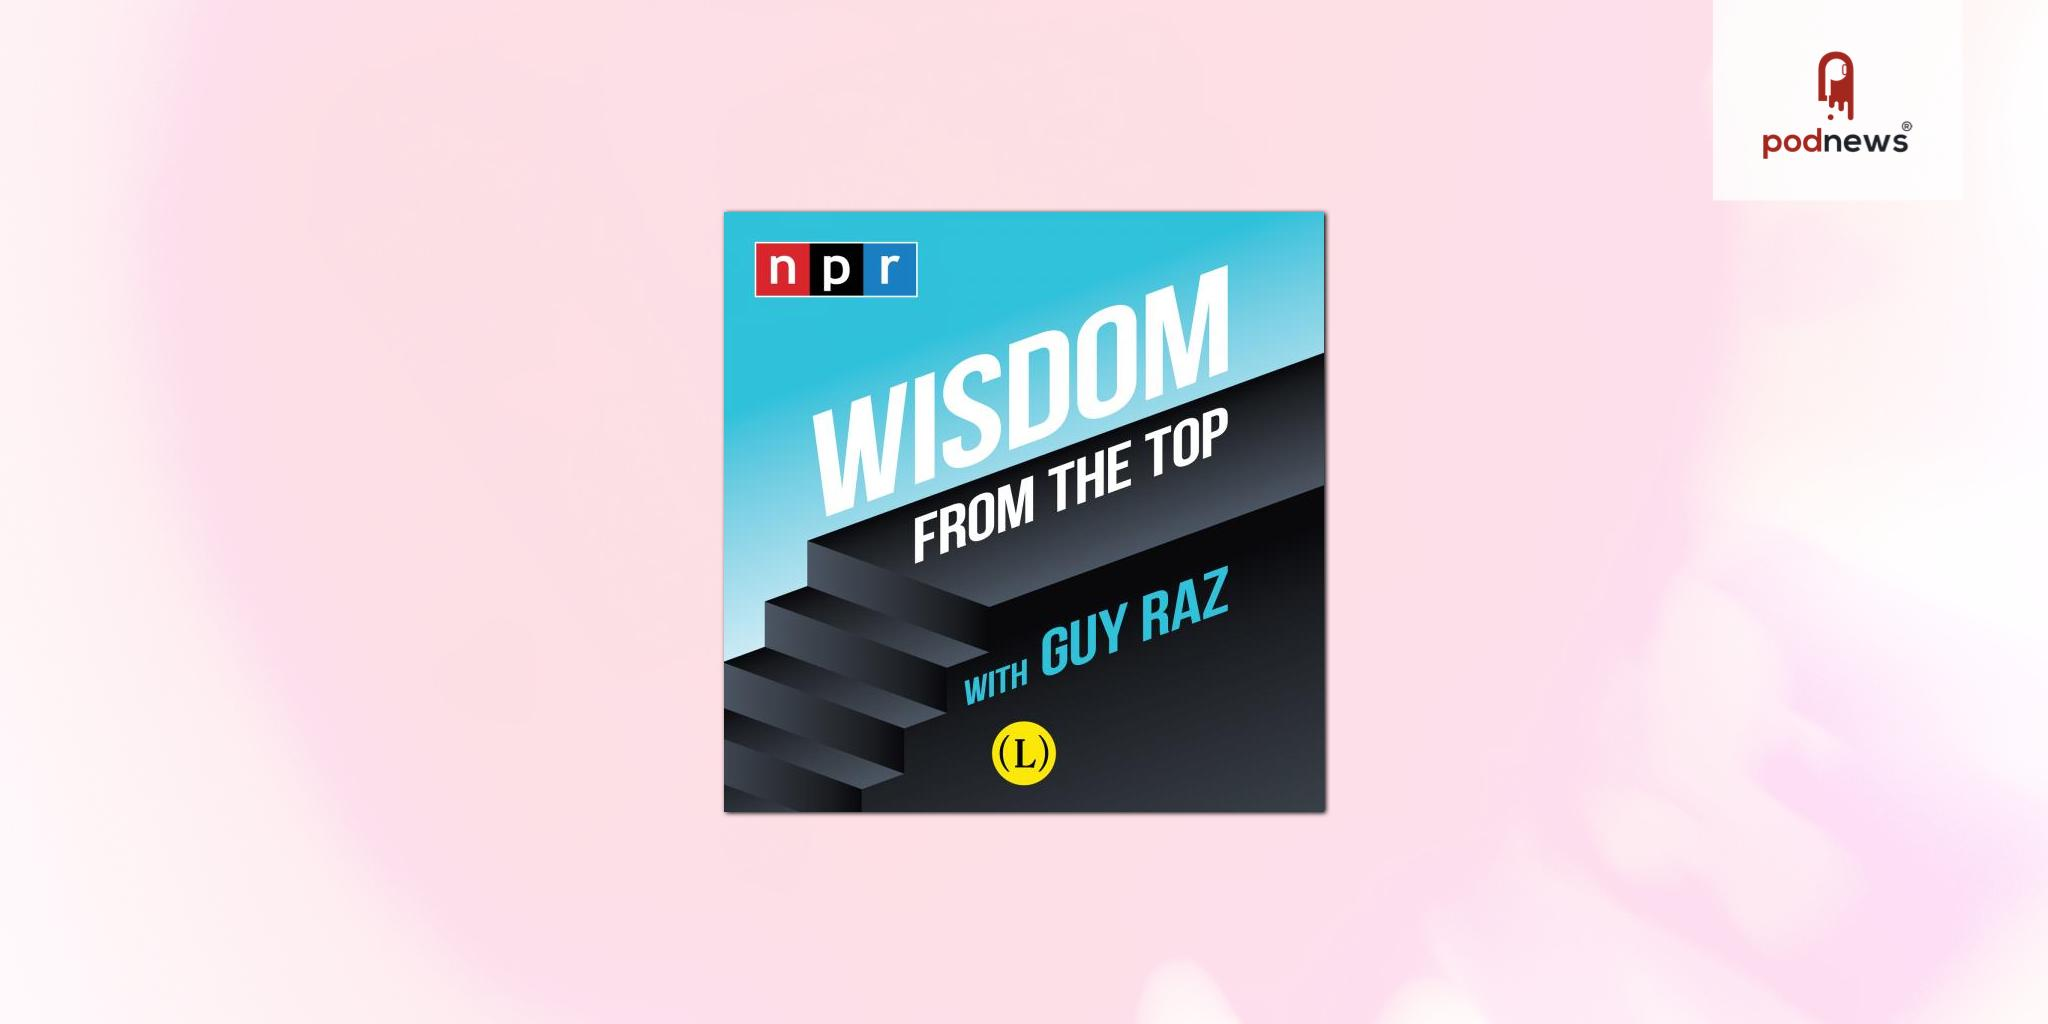 Luminary and NPR partner to bring Wisdom from the Top podcast with Guy Raz to global audiences